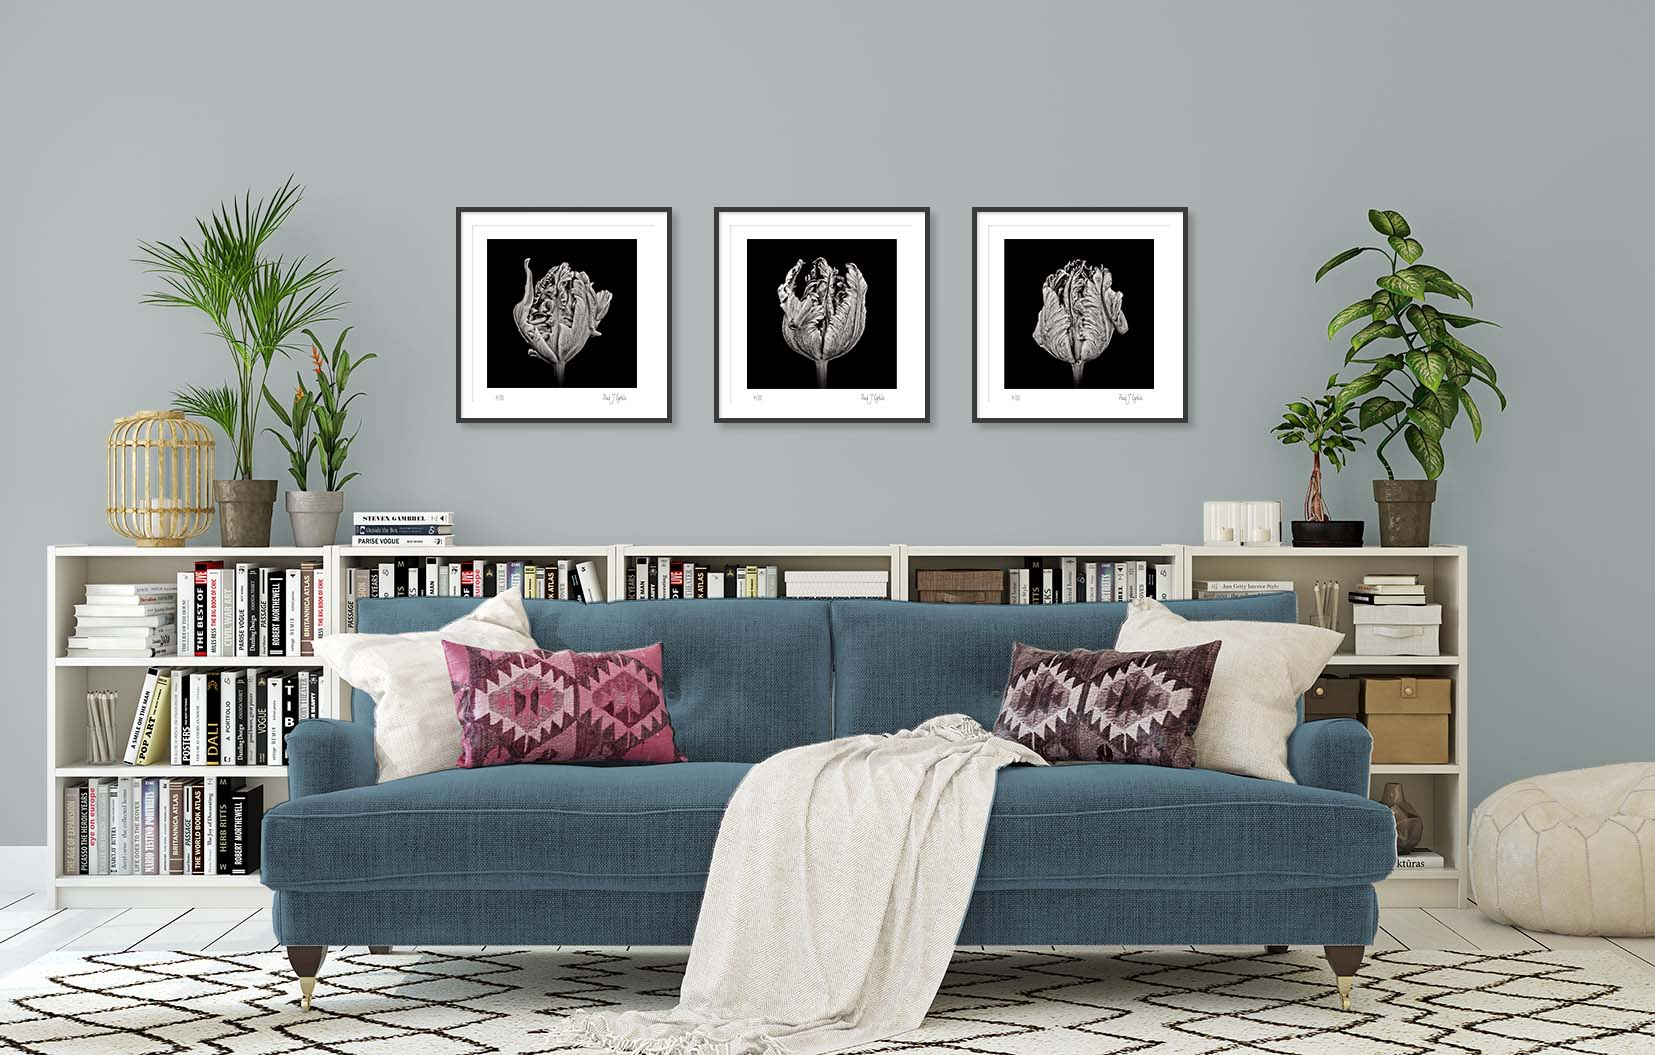 Three black and white, fine art photographic prints of a parrot tulip by Paul Coghlin FBIPP